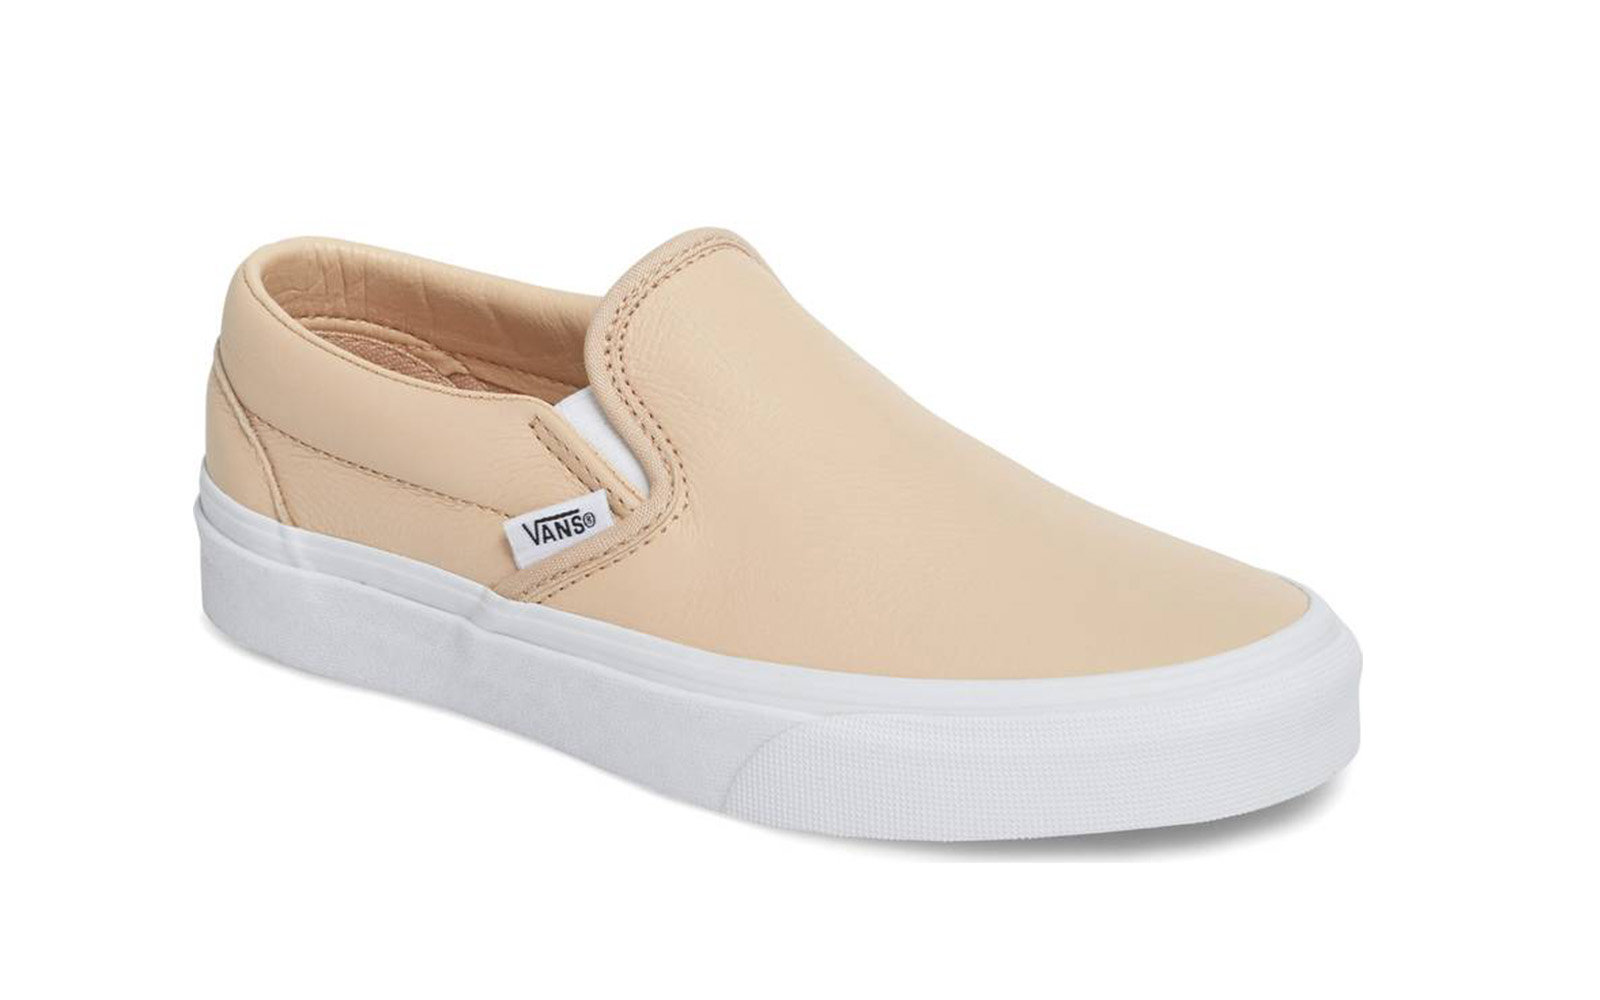 e81c3b865f 10 Super-comfy Slip-on Sneakers to Wear This Spring